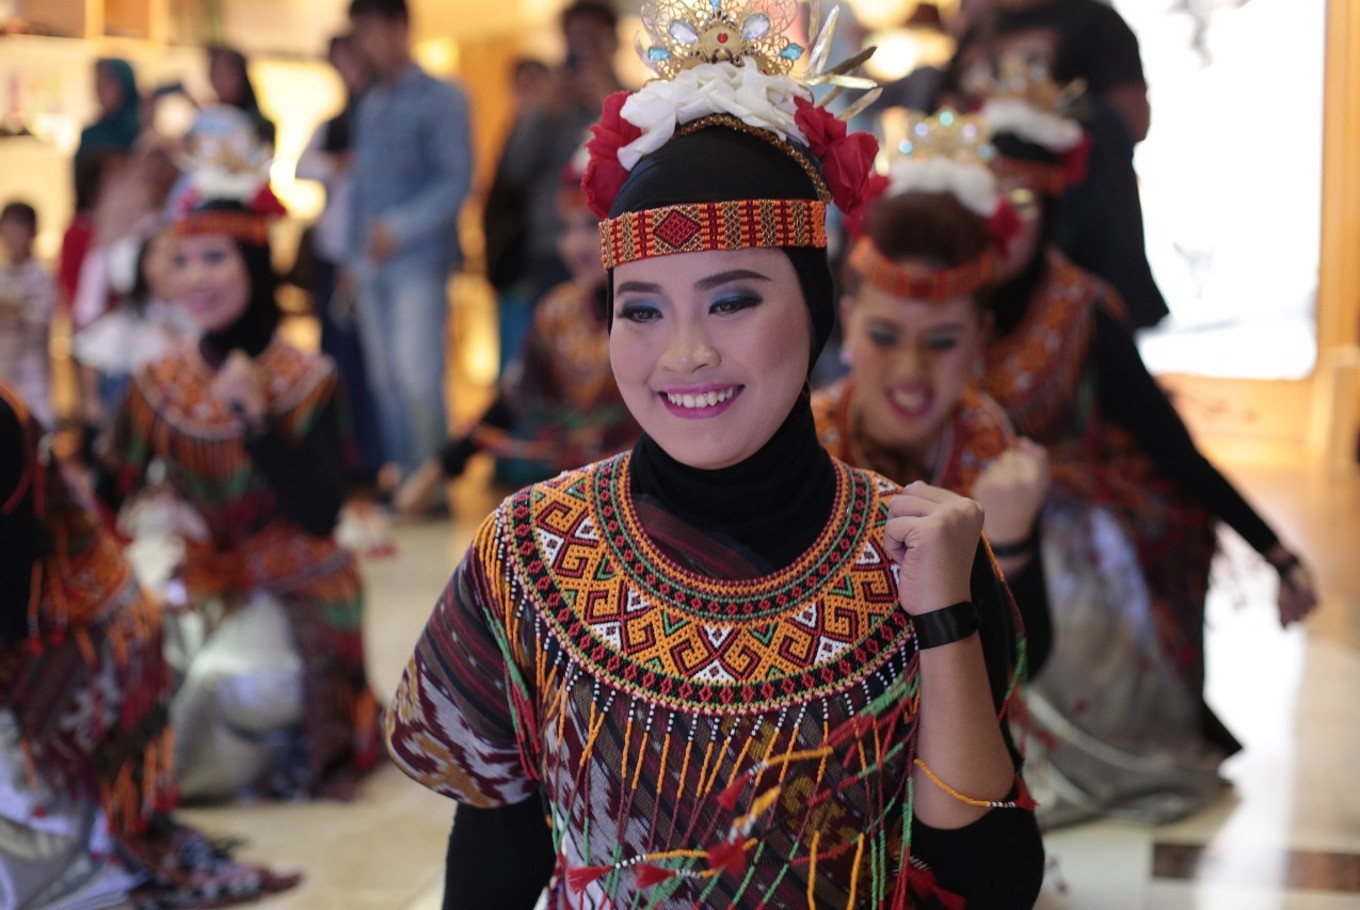 One of the participants smiles during Indonesia Menari 2017. Taking place in Grand Indonesia mall on Sunday, participants are encouraged to dance to a compilation of traditional Indonesian songs.